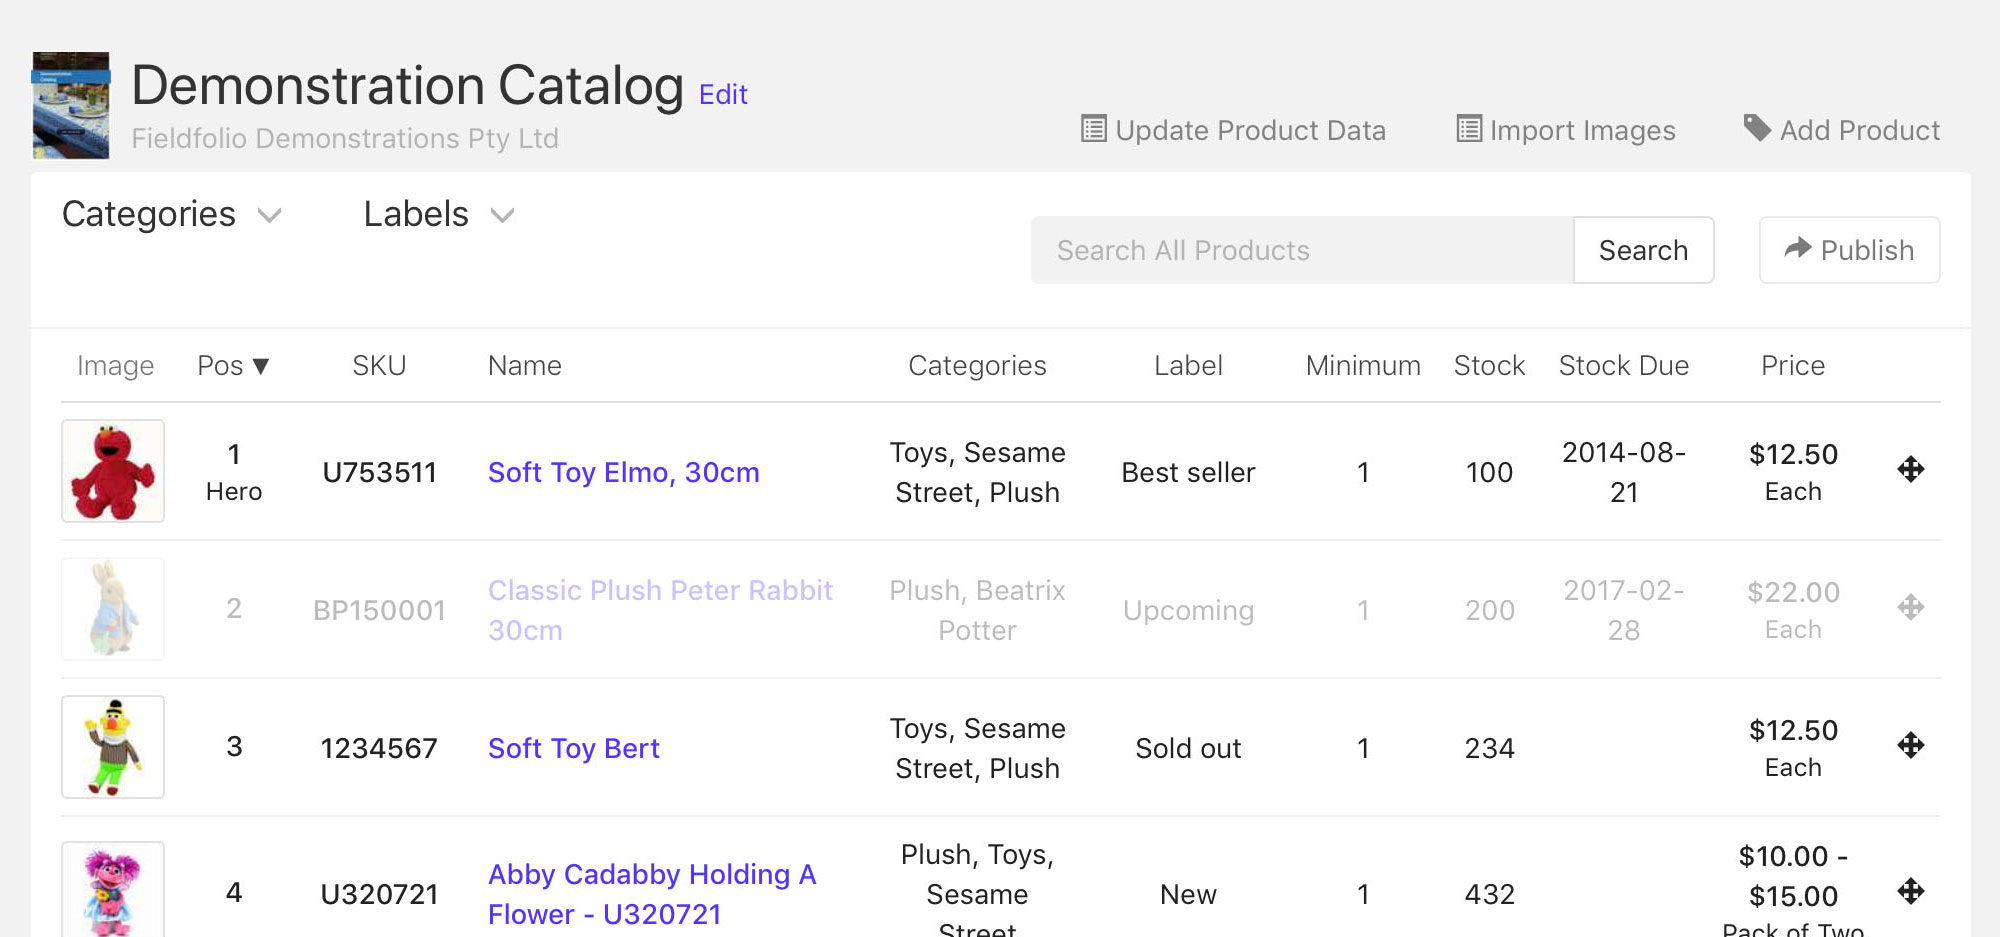 Hidden products are dimmed in your catalog product list